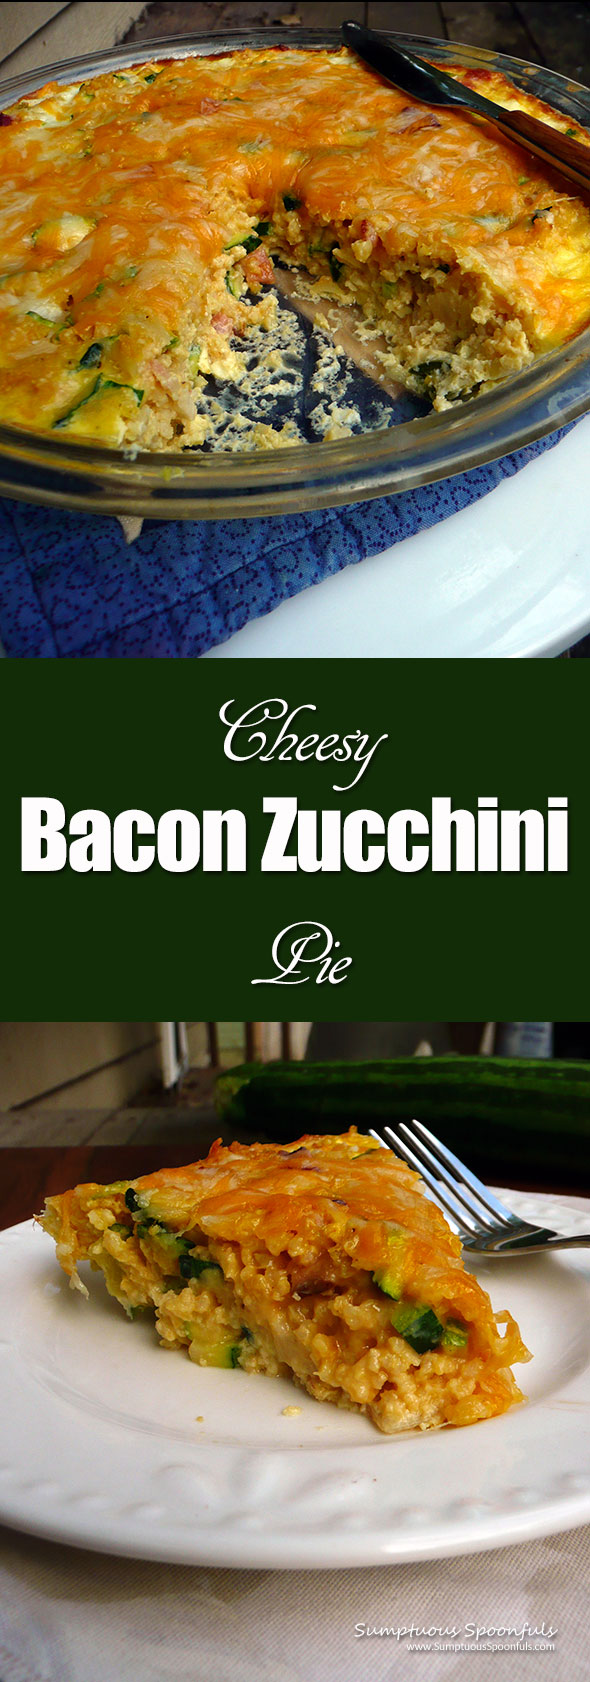 Cheesy Bacon Zucchini Pie ~ Sumptuous Spoonfuls #easy #zucchini #egg #pie #recipe